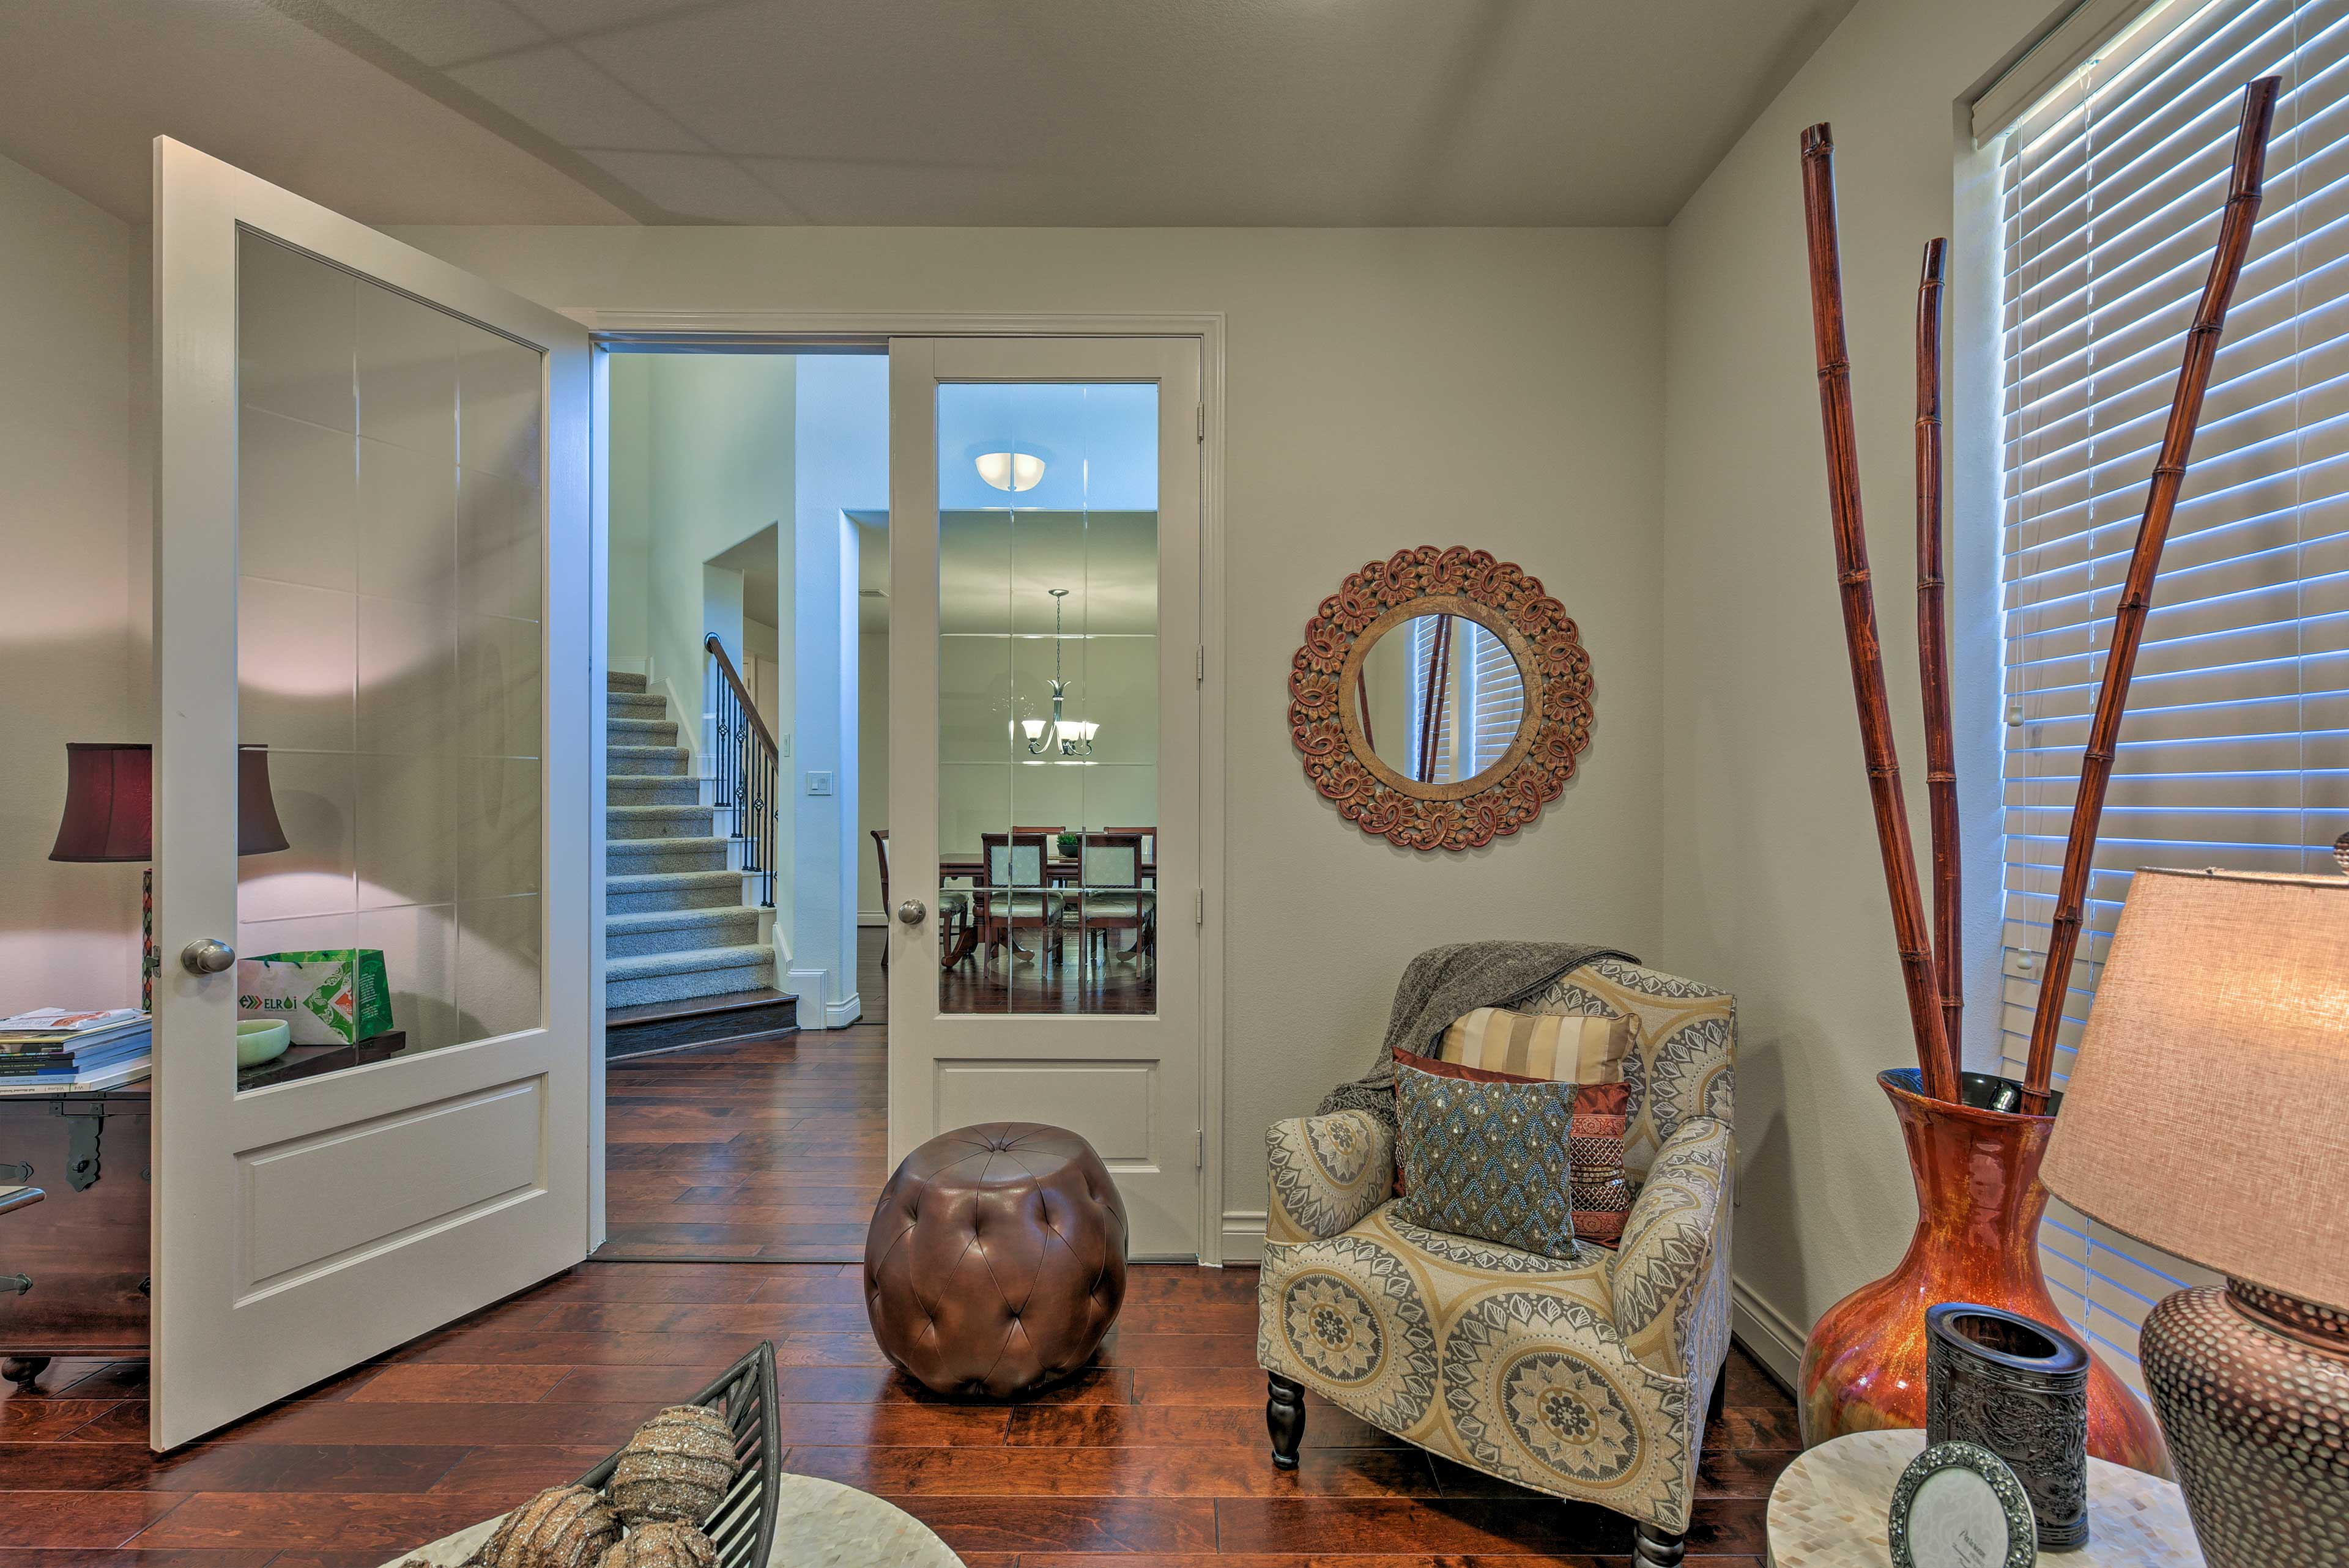 The property is located in an exclusive, upscale neighborhood.